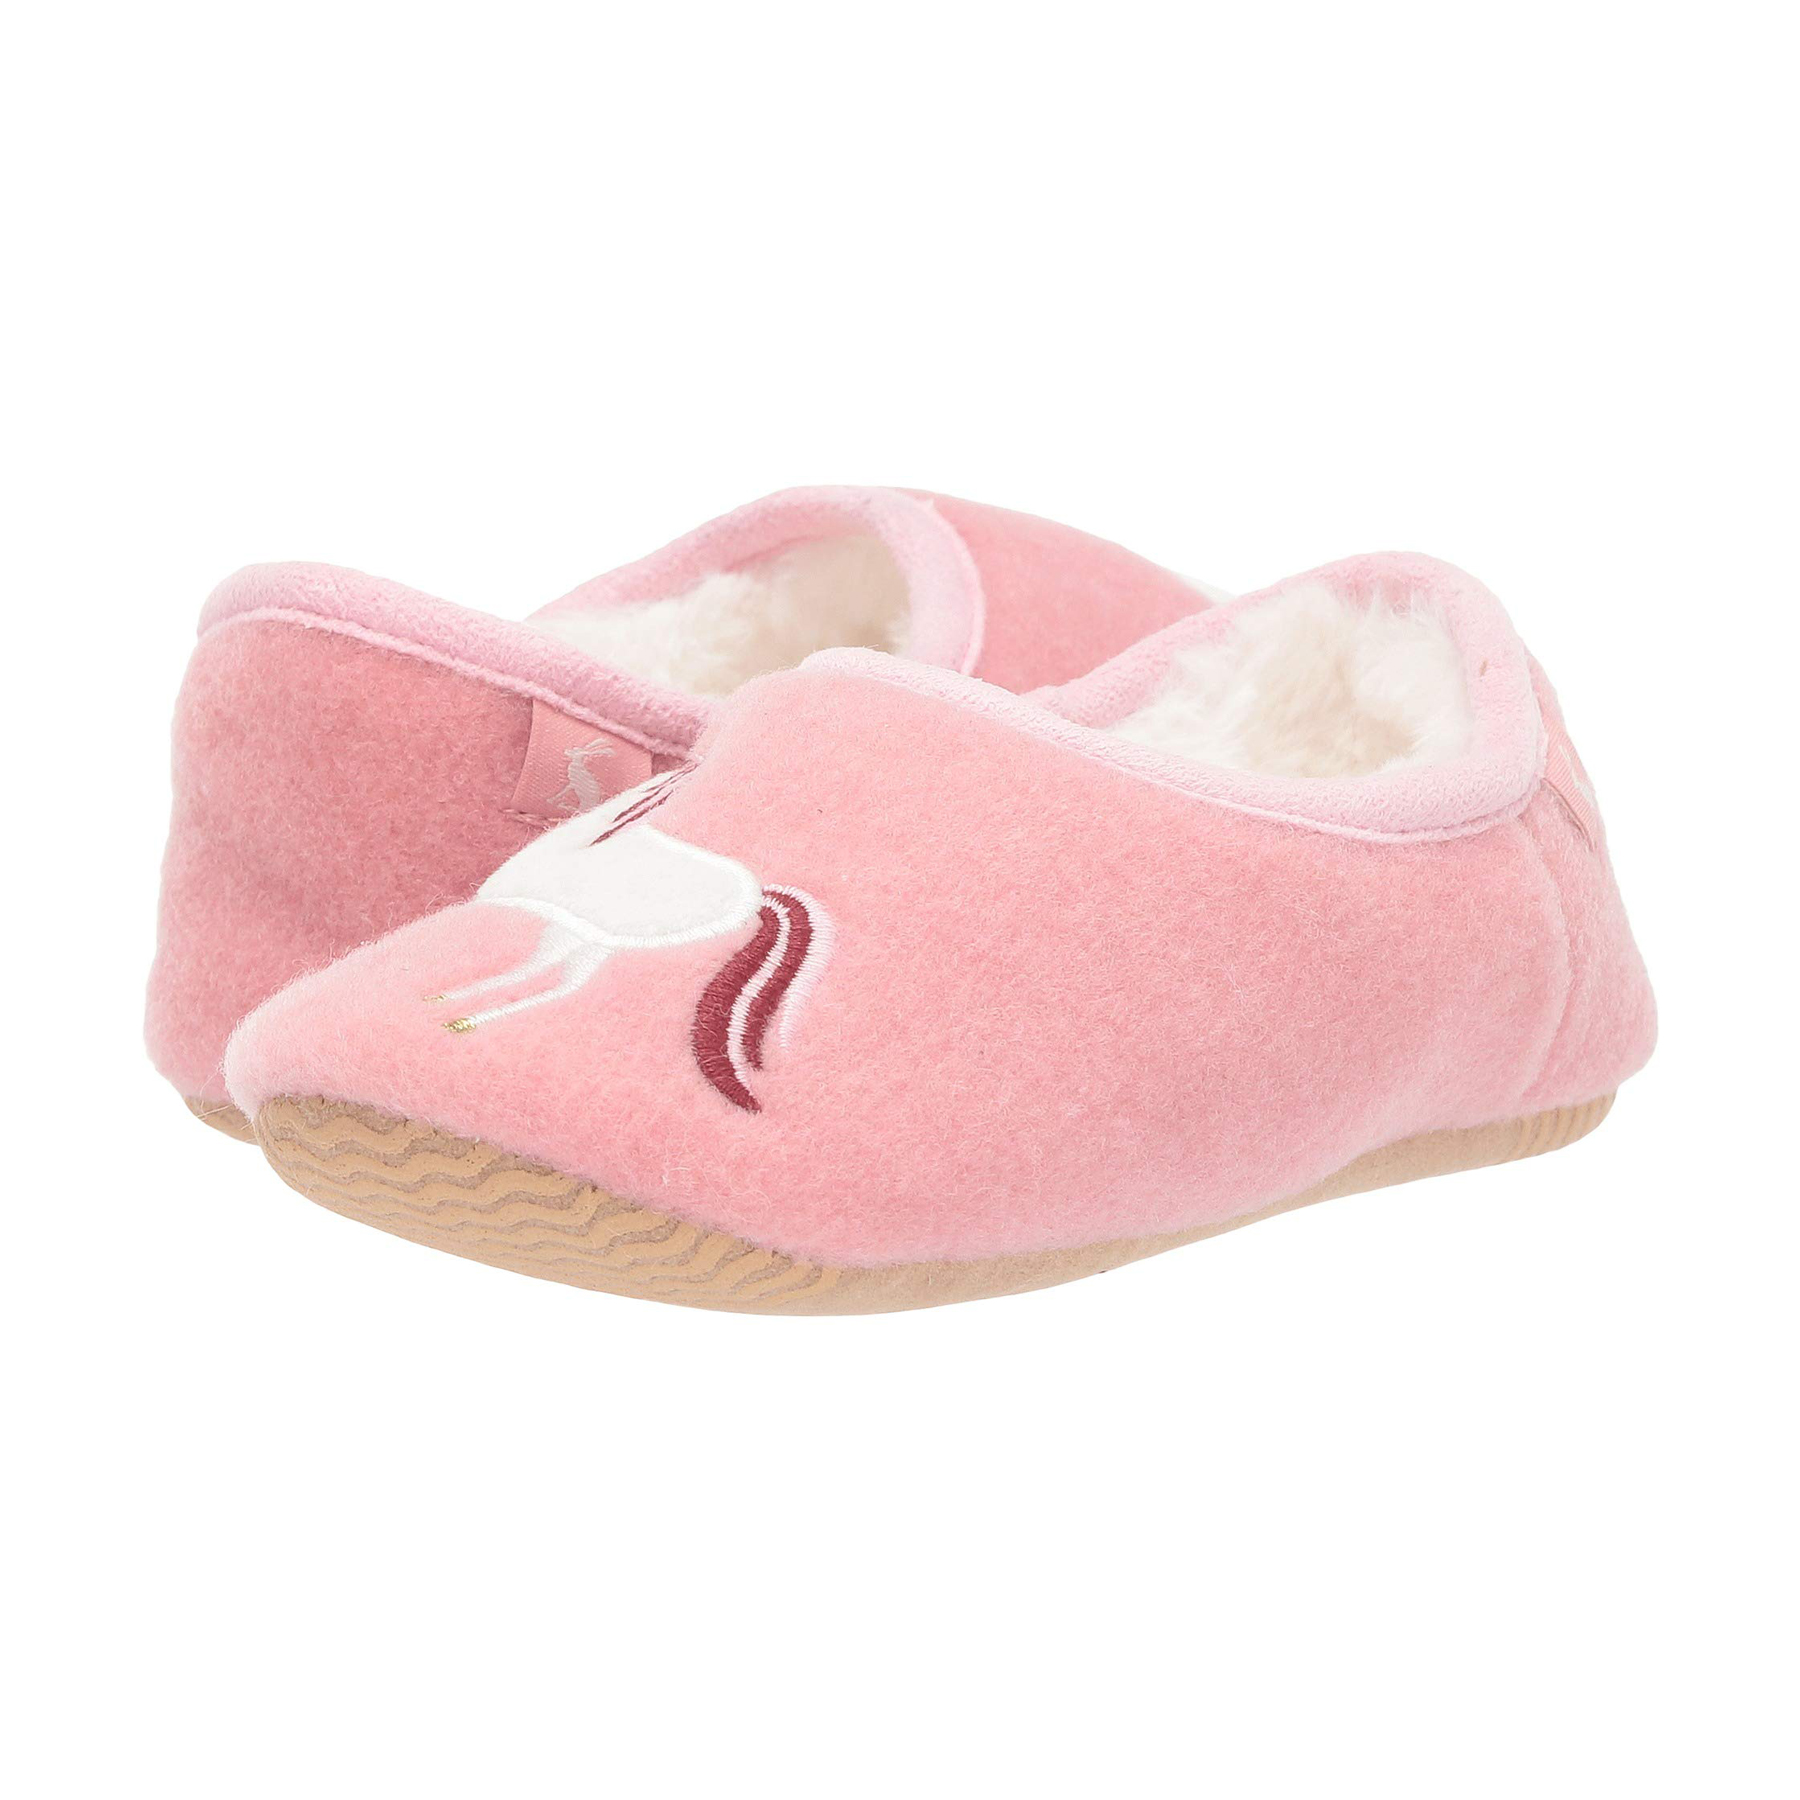 Valentine's Day gifts for kids - Joules Kids Slippet Felt Mule Slippers